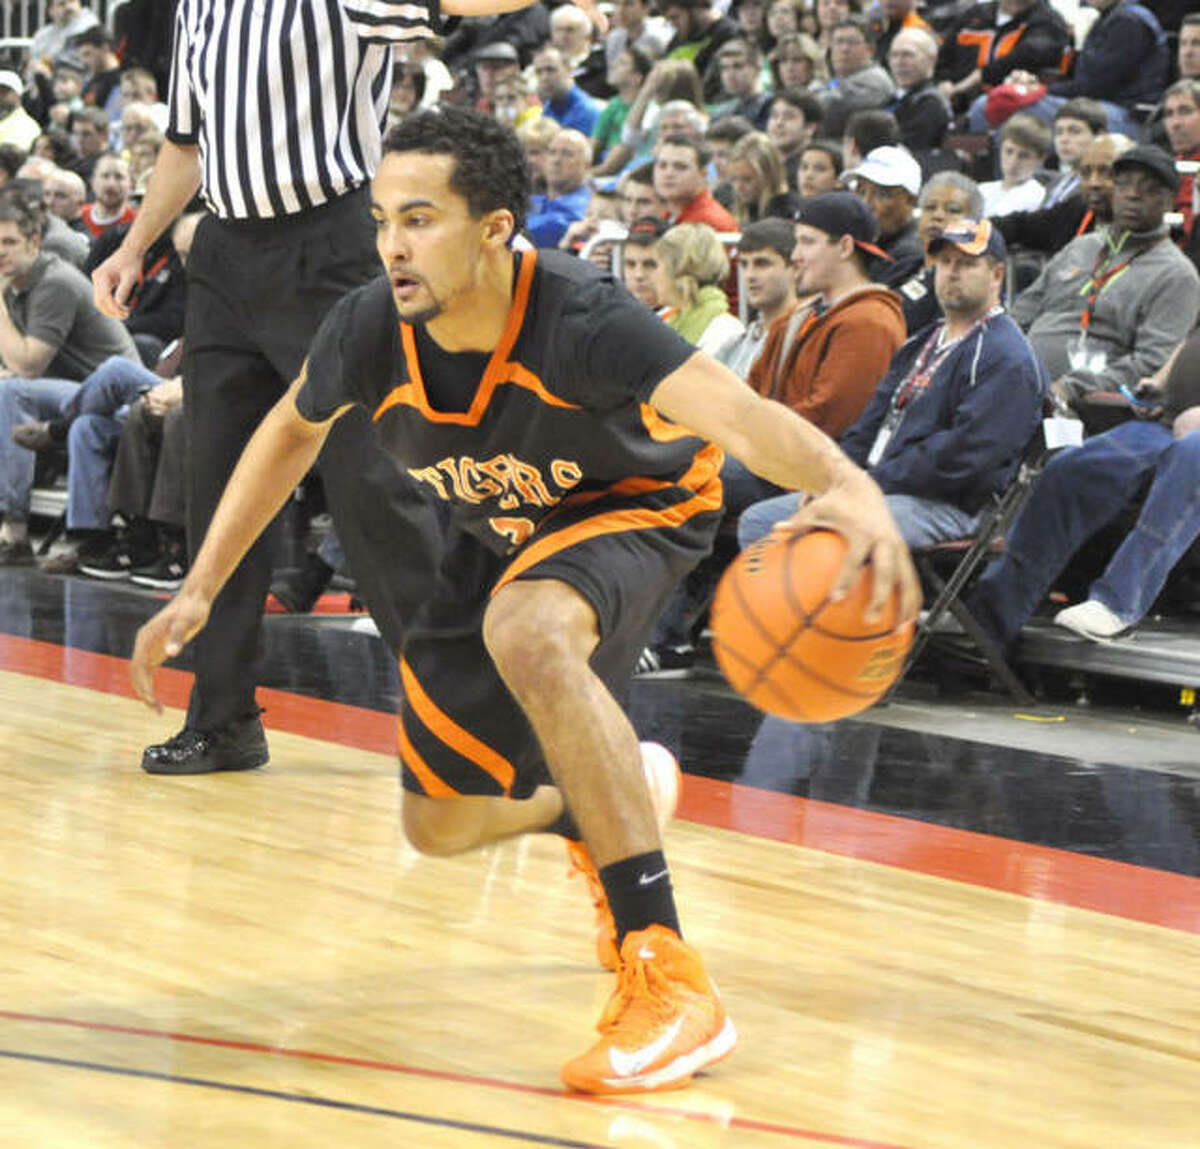 At the time of his graduation, only three players scored more points than Tre Harris. His 1,387 points sat behind Greg Ahart (1,812), Paul Schaefer (1,482) and Mannie Jackson (1,441) on the program's career leaderboard.